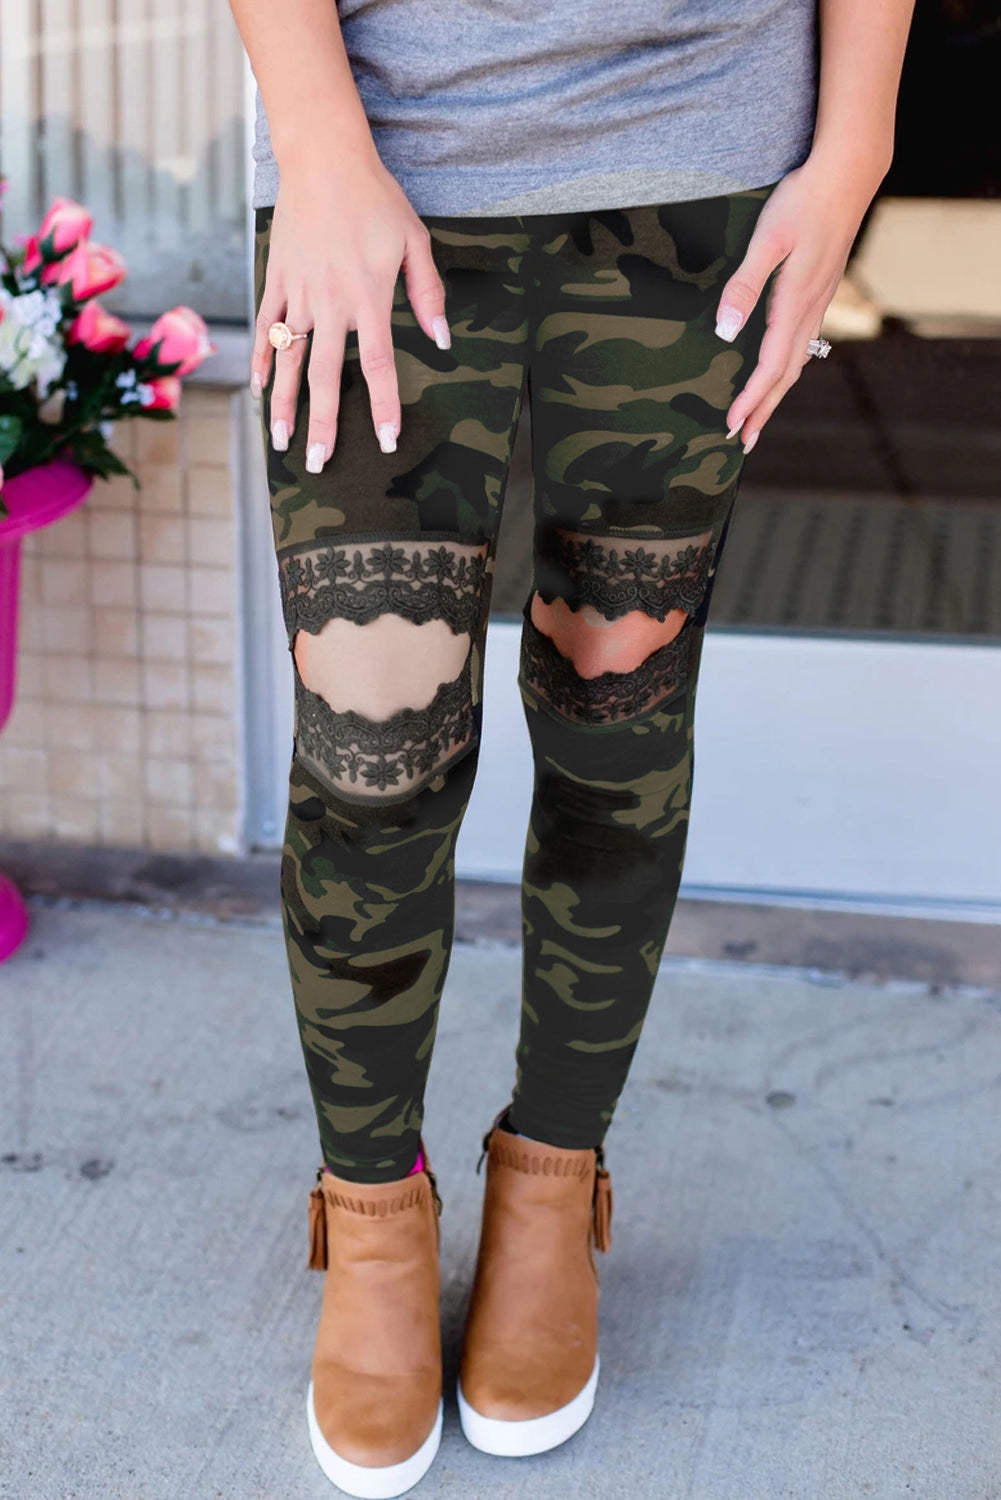 Floral Hollow Out Camo Printed Skinny Leggings